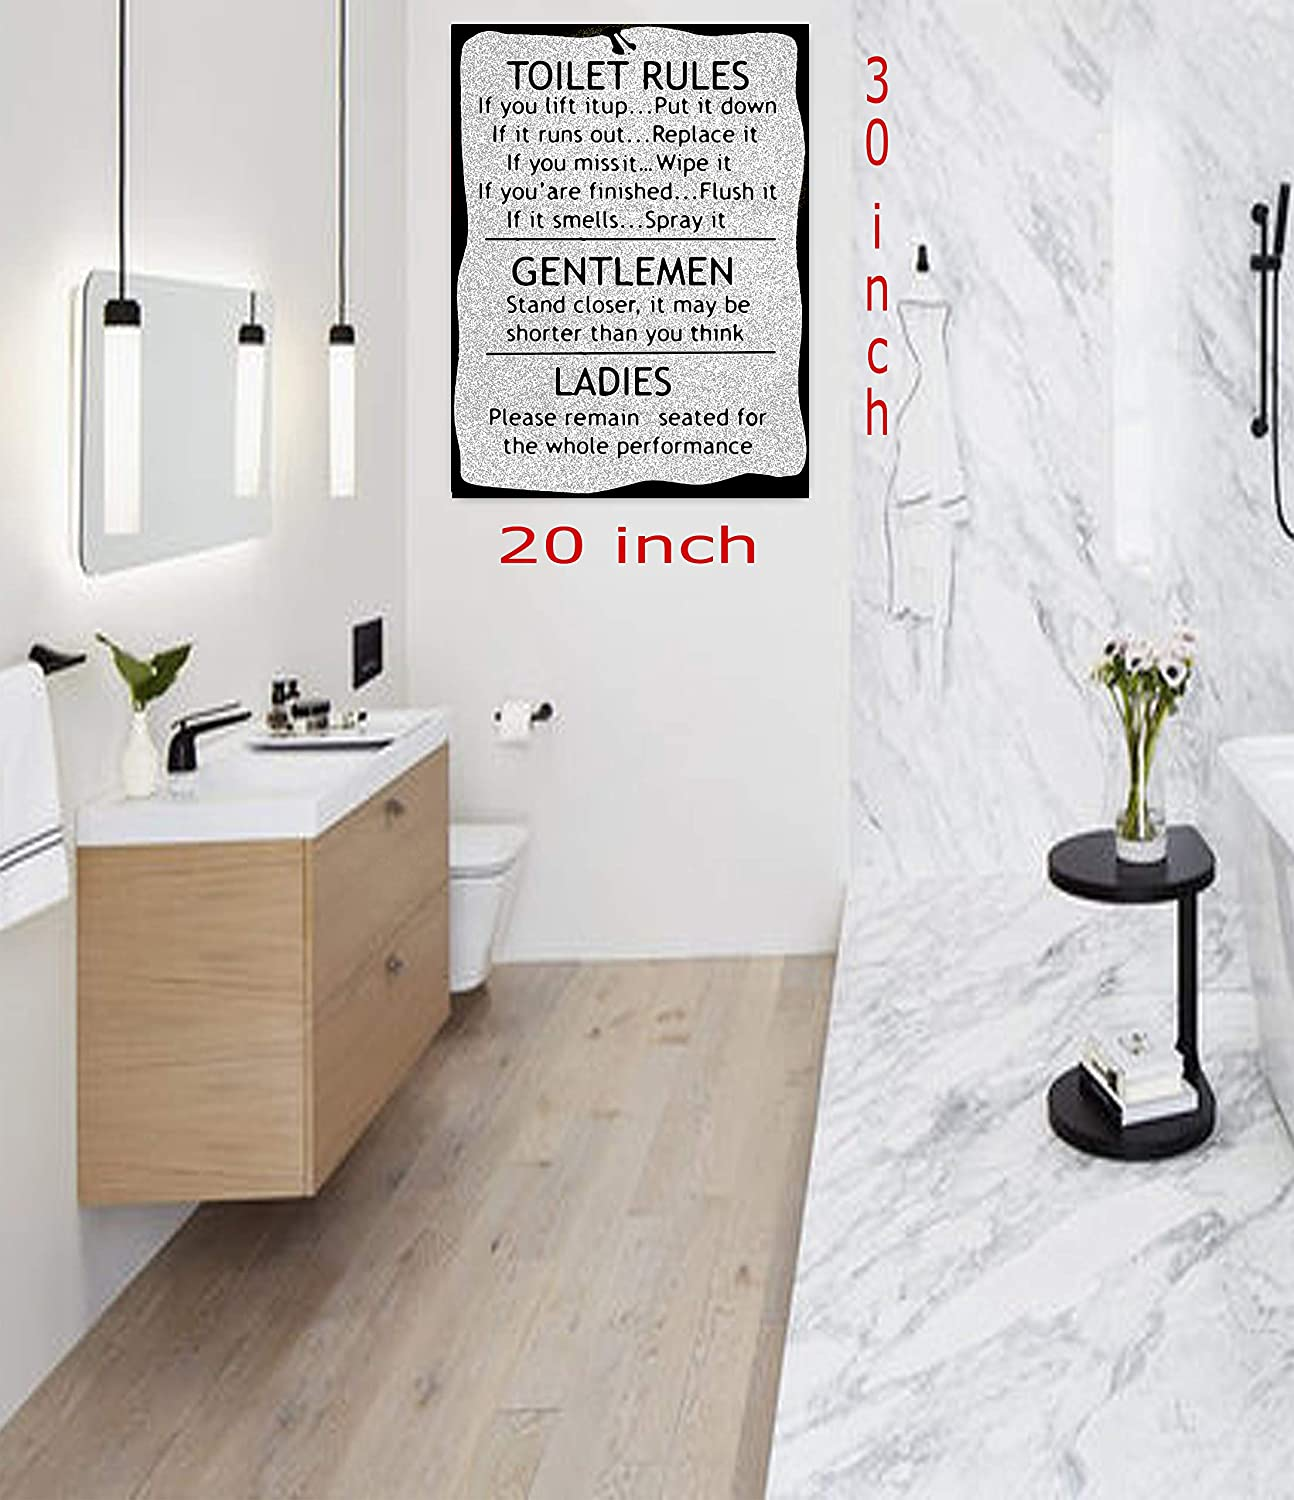 -18mm Depth 30x 20 cm Toilet Rules Picture Photo in Black White Print On Framed Canvas Wall Art Bathroom Decoration 12/'/'x 8/'/'inch